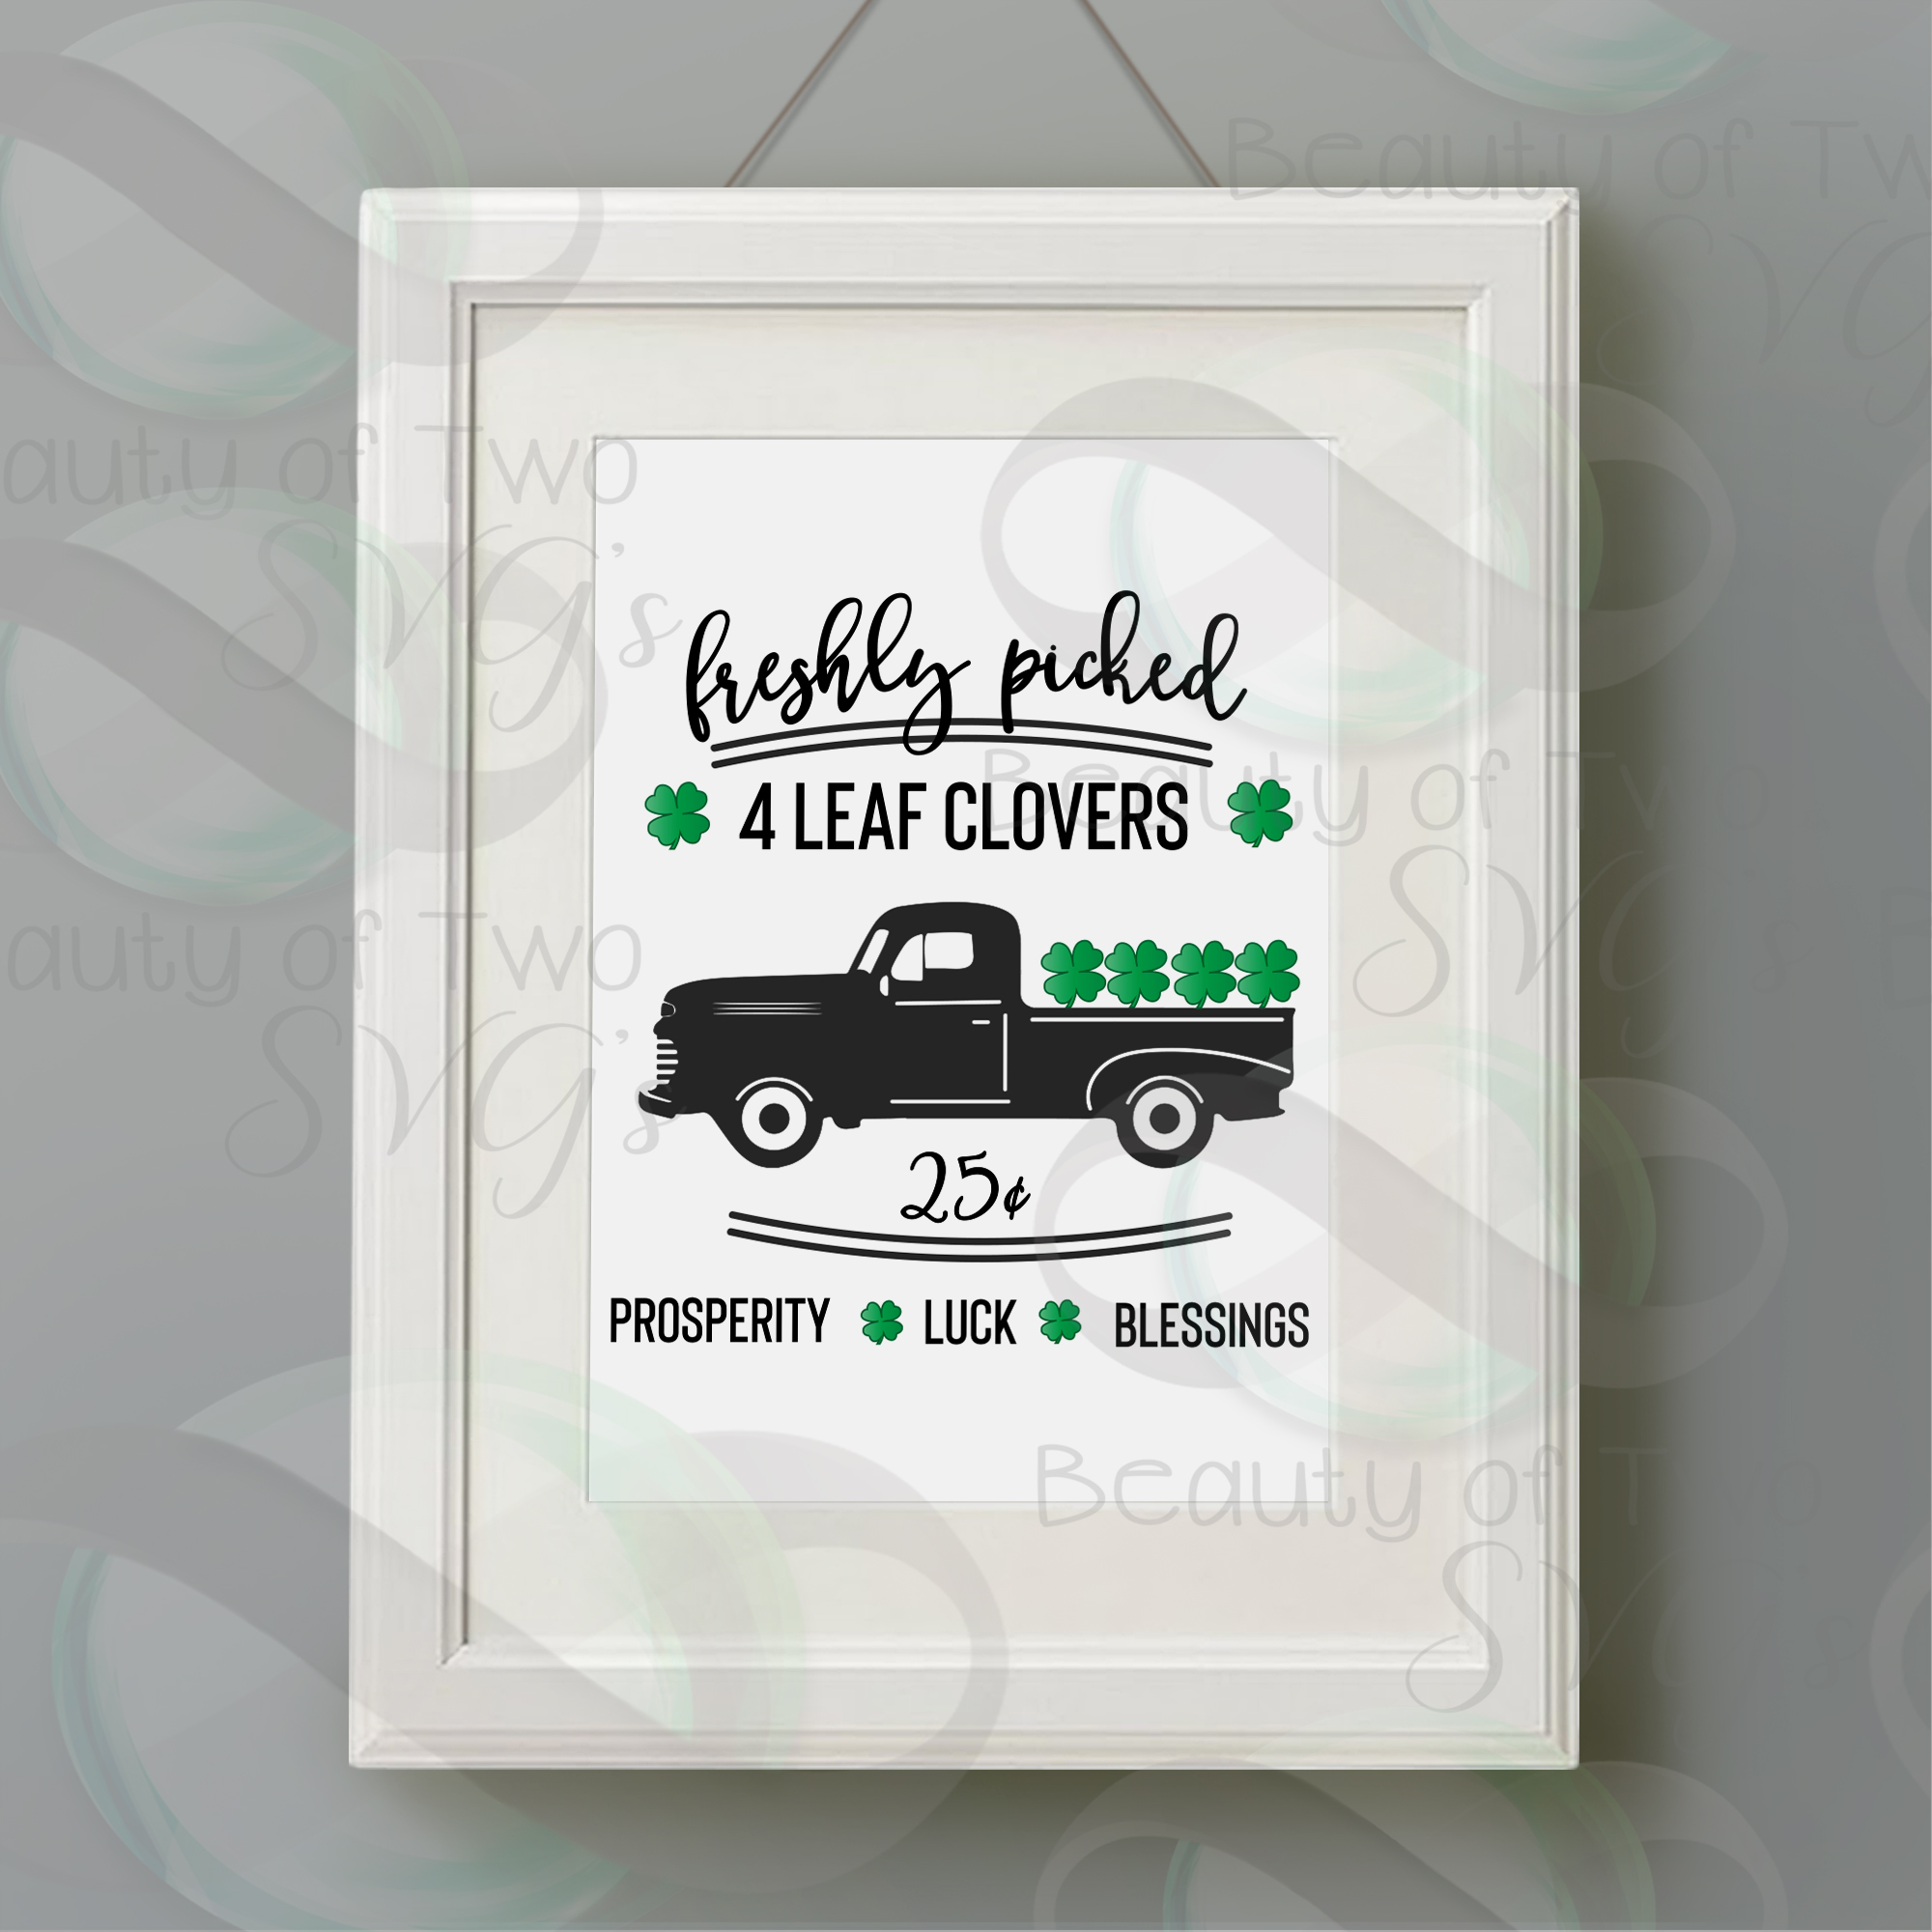 St Patrick's Day Freshly picked clovers vintage truck svg example image 2